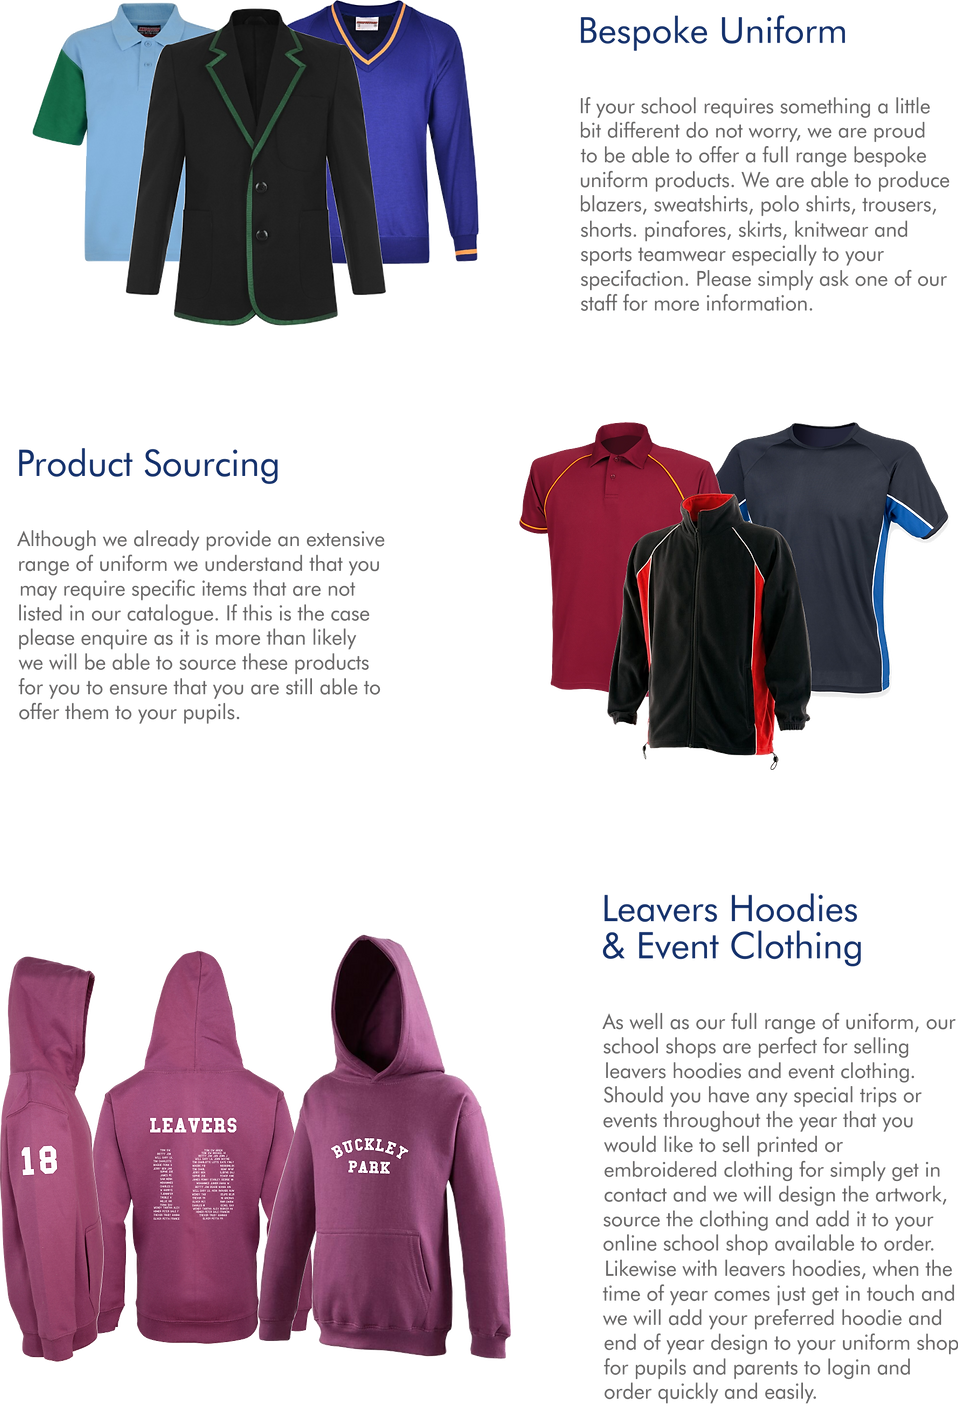 DecoSchoolwear School Uniform Supplier Services